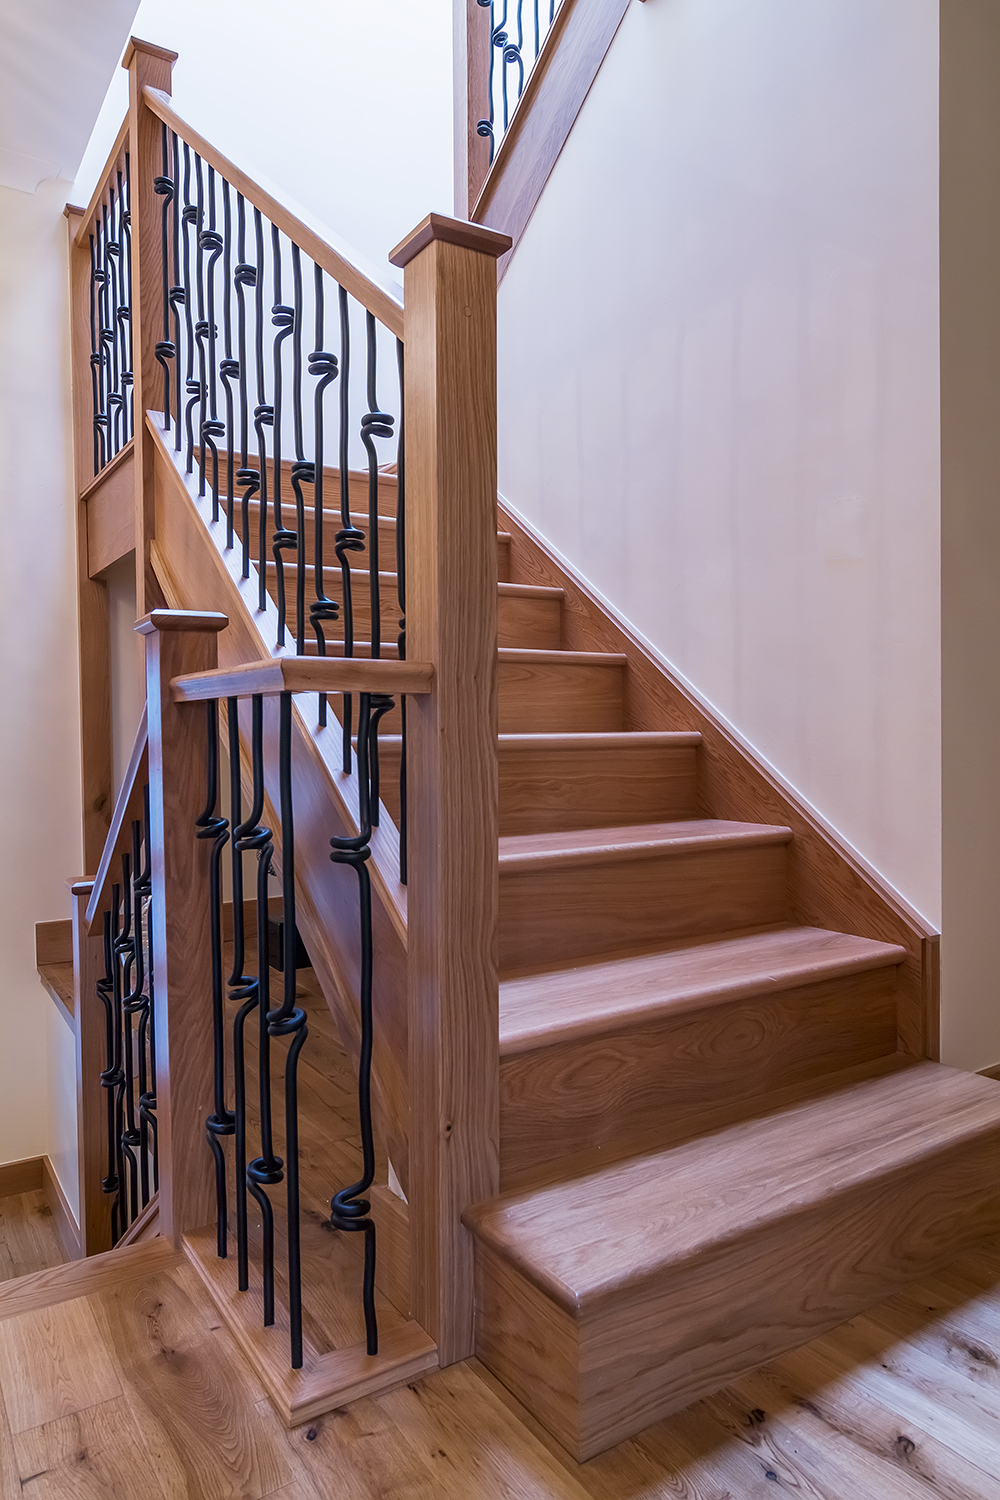 www.stockwell-ltd.co.uk   3 kite mid-winder dogleg oak staircase with feature square double bullnose step, square newels, flat newel cap with Richard Burbidge Elements spindles.